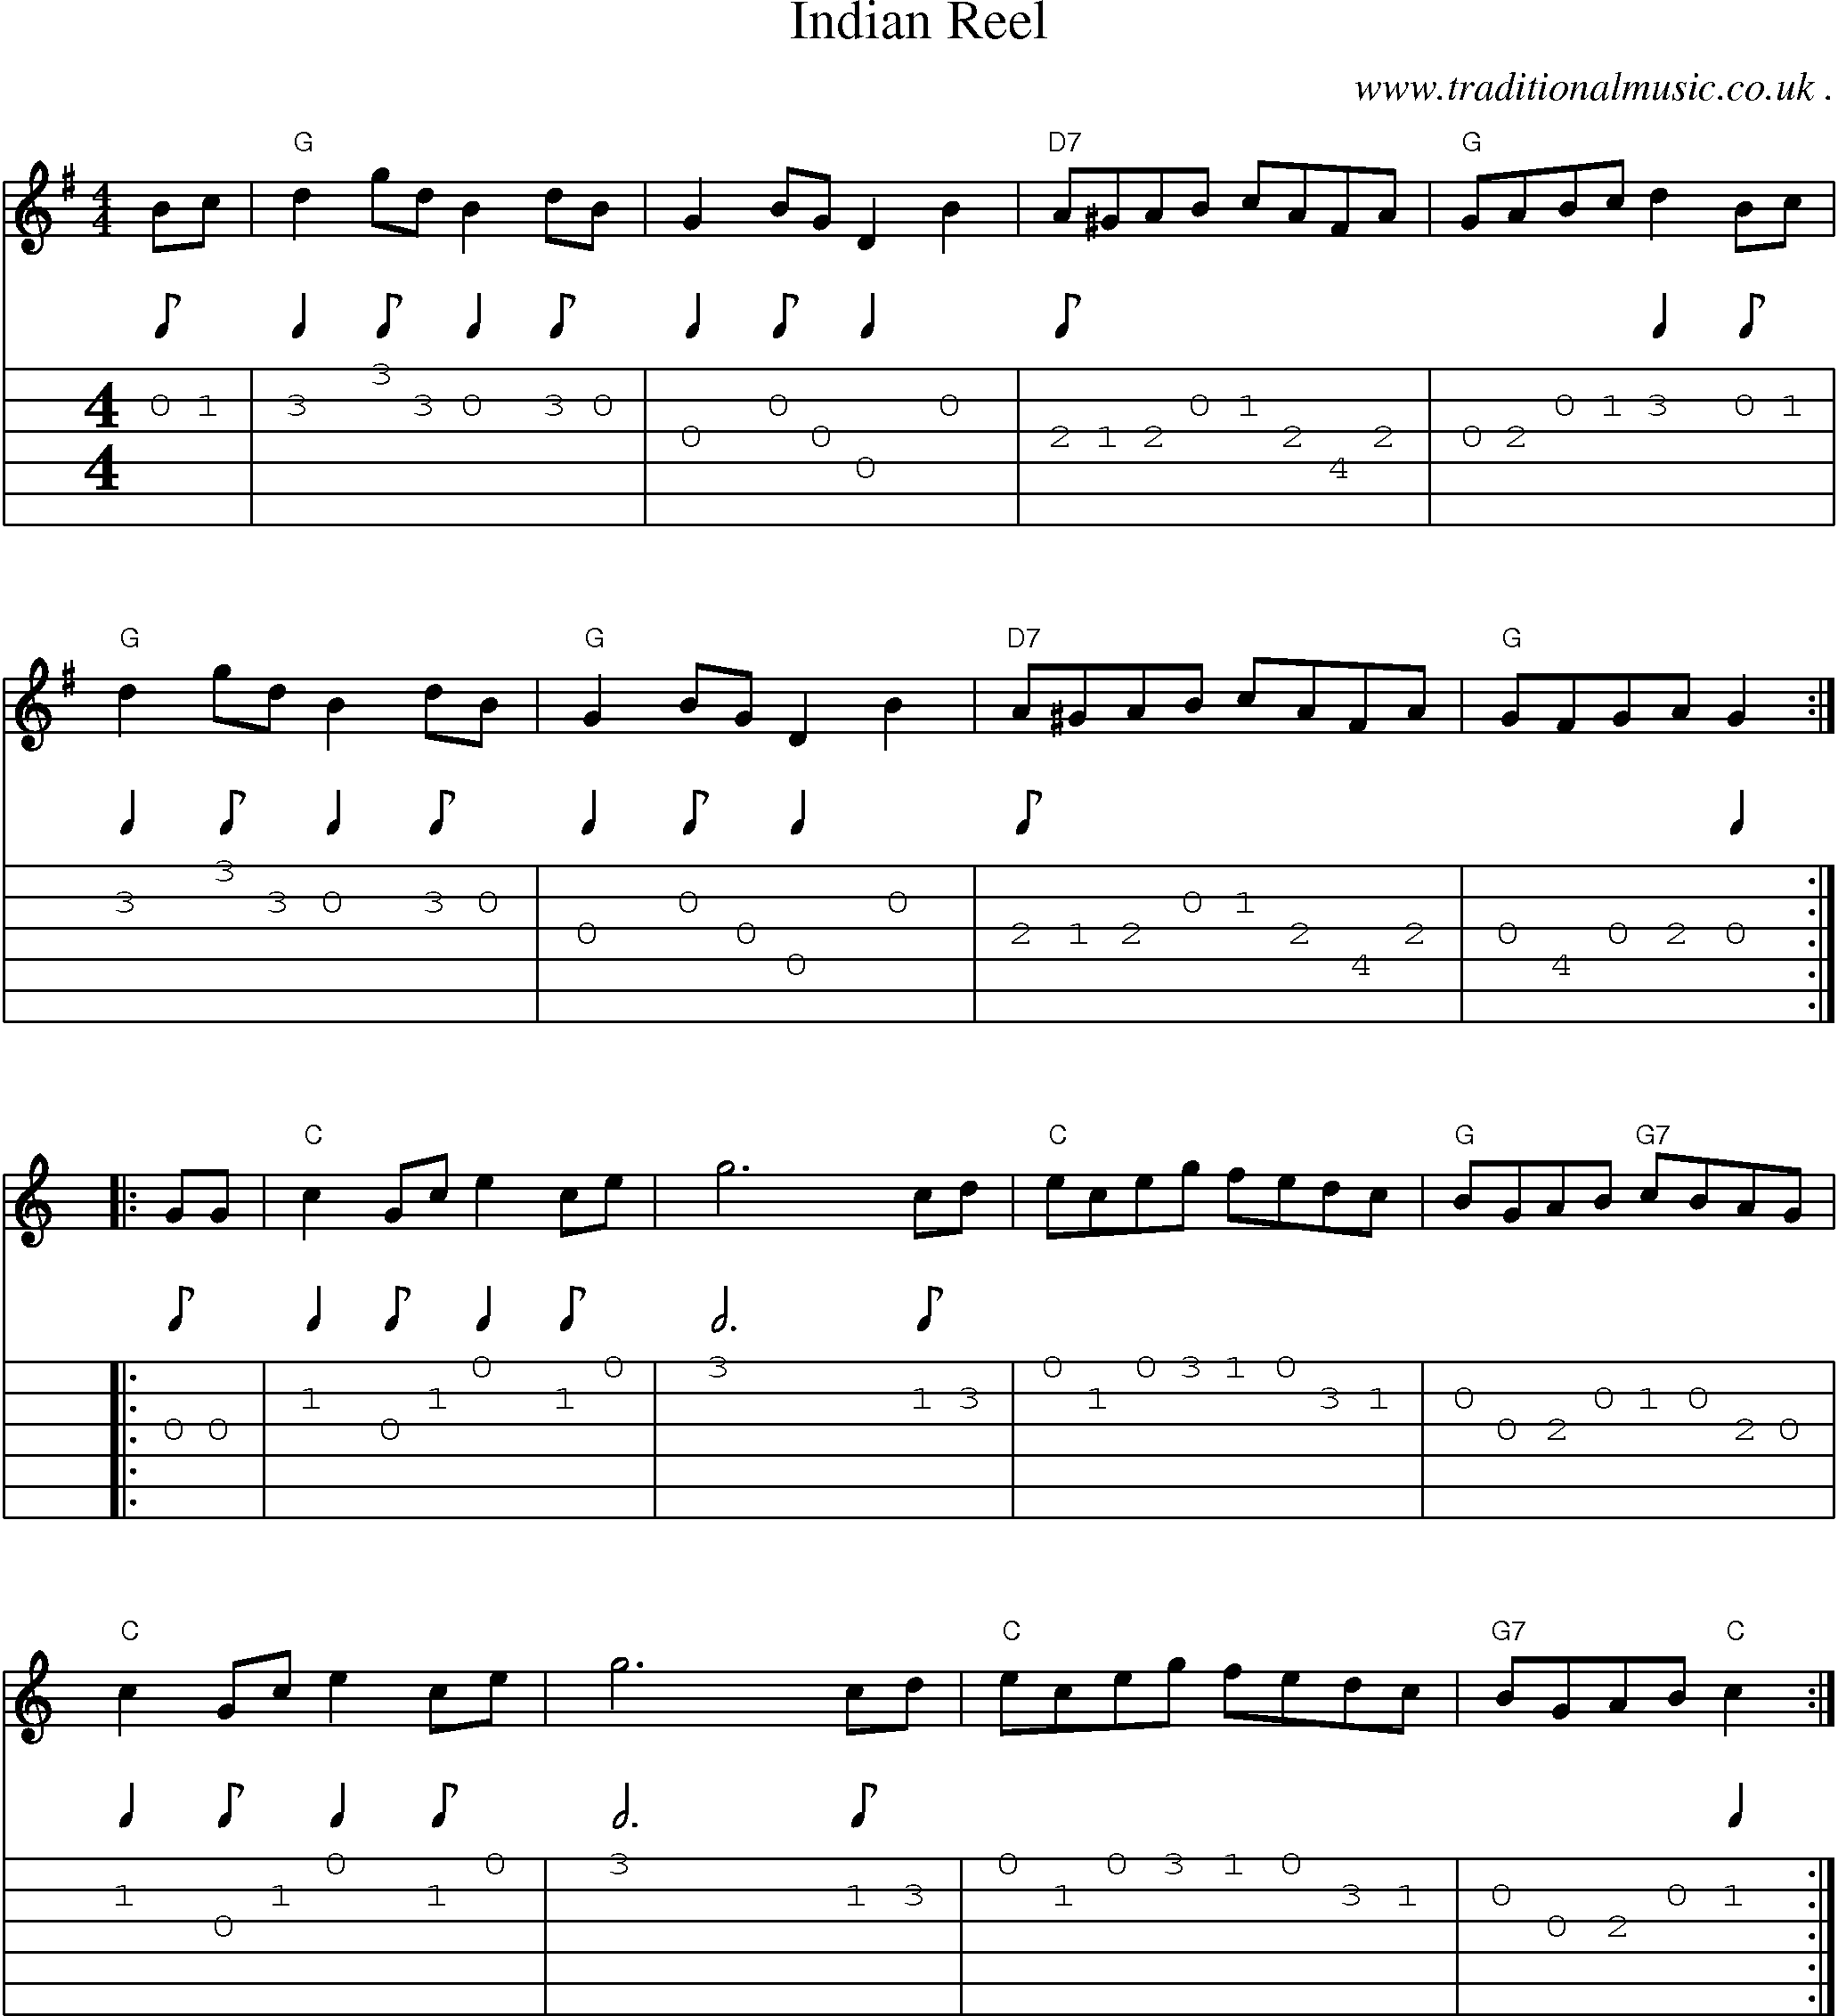 Scottish Tune, Sheetmusic, Midi, Mp3, Guitar chords u0026 tabs: Indian Reel